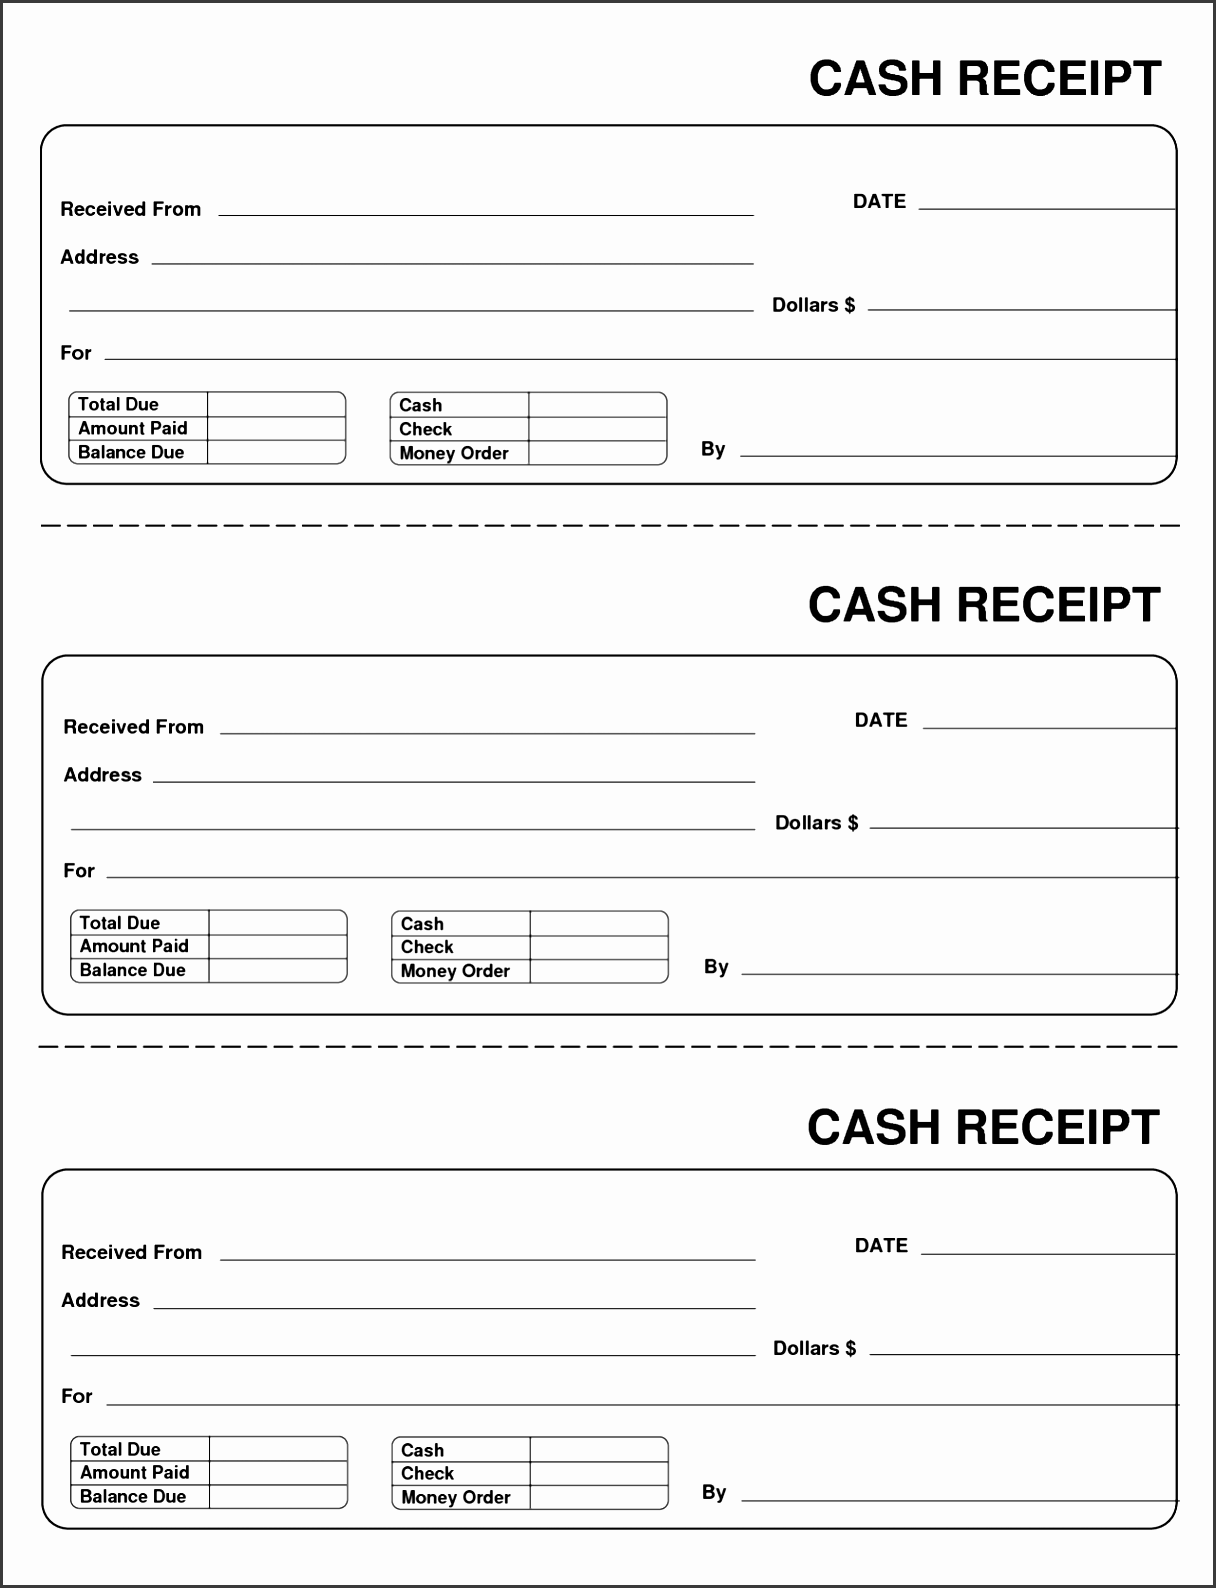 Delivery Receipt Form Template International Resignation Letter Payment  Receipt Design Aeihy Unique Sample Delivery Receipt Free  Delivery Receipt Form Template